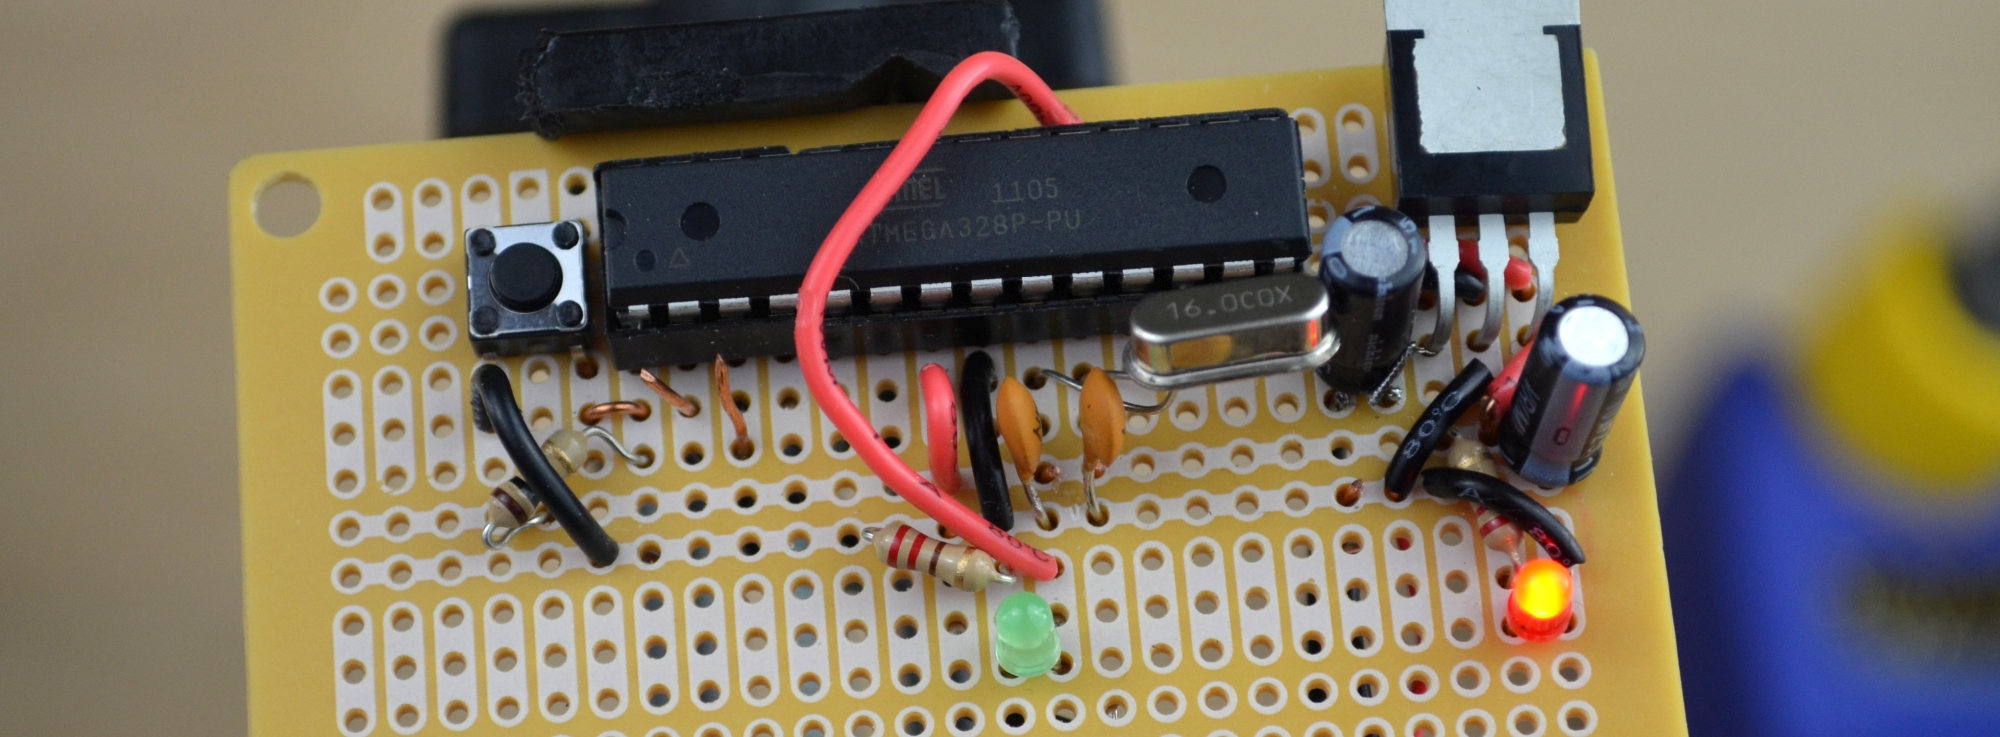 Friendly Wire - Discover the joy of understanding electronics